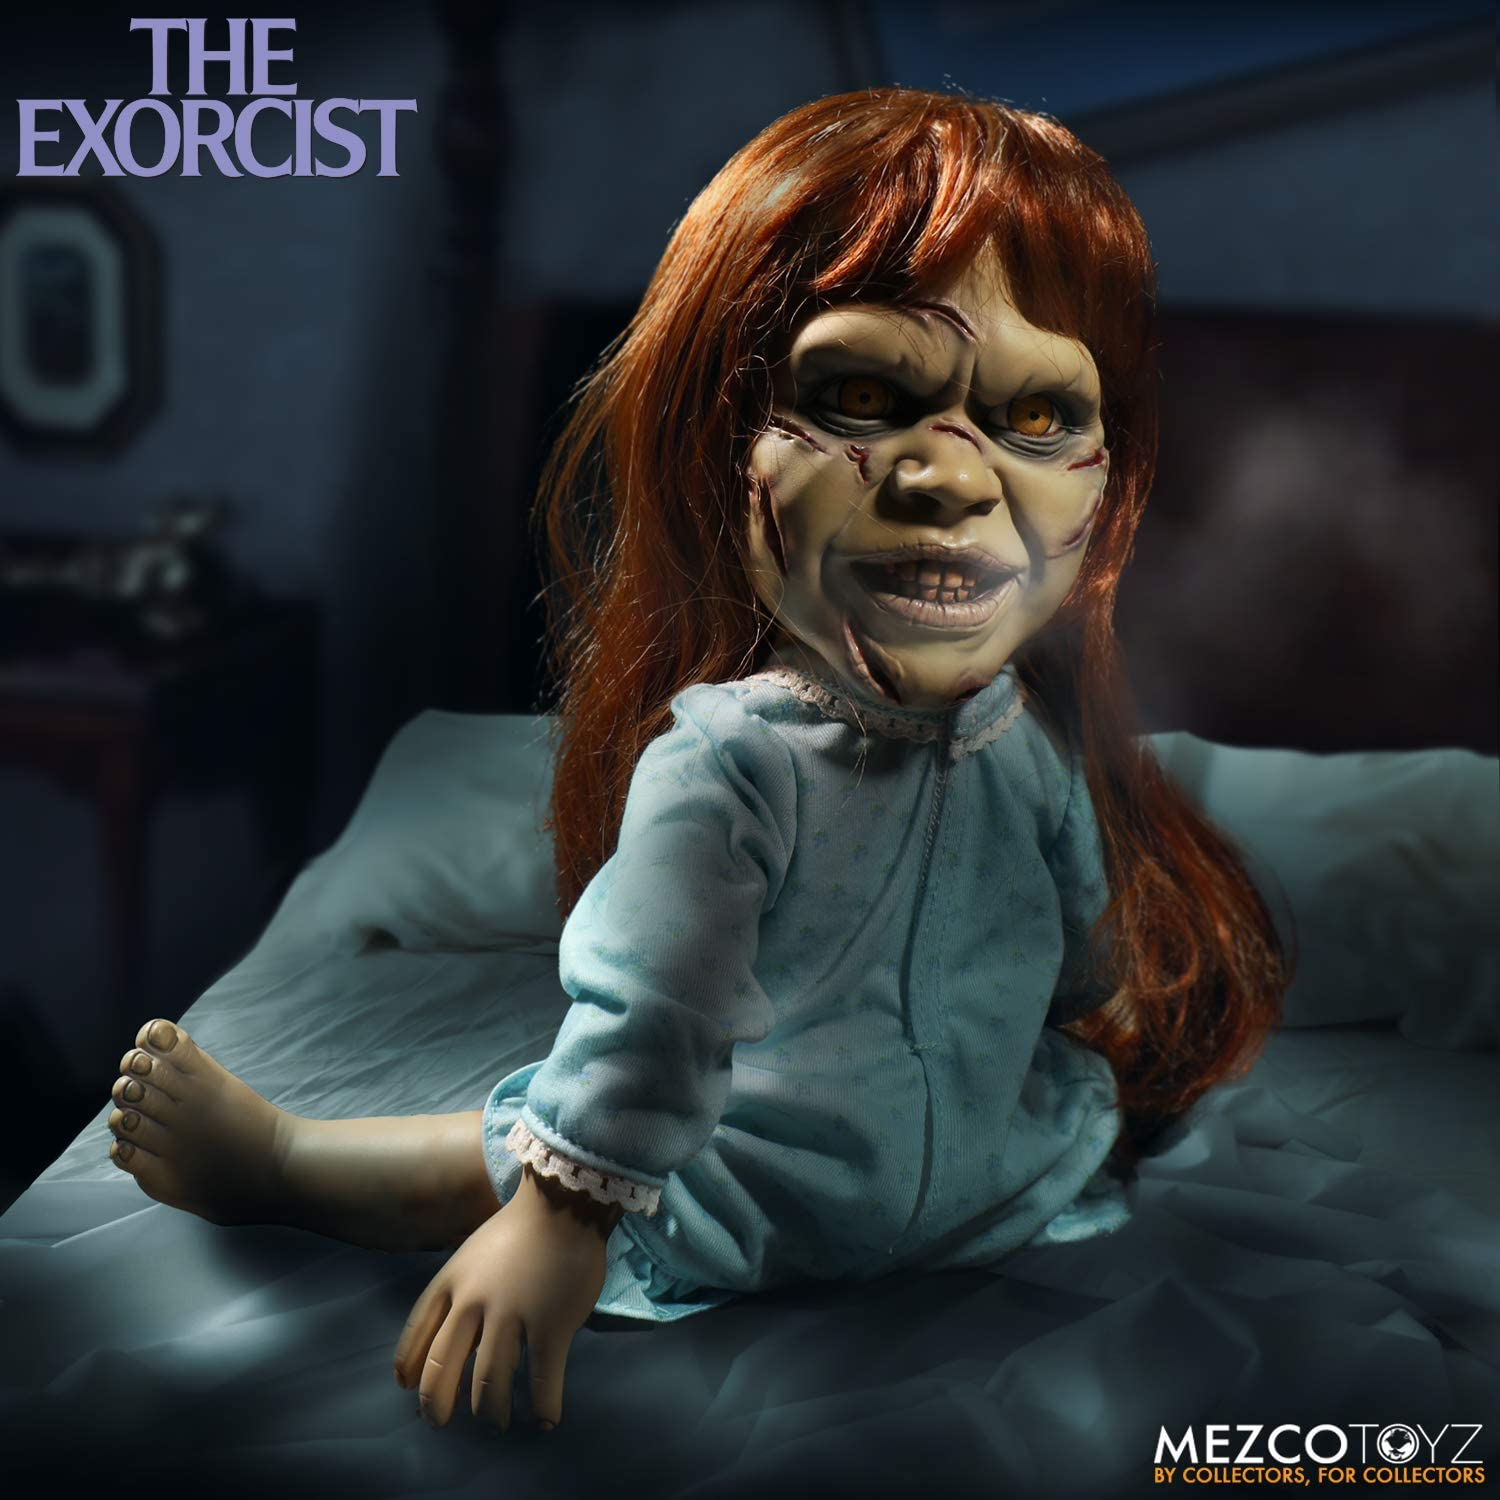 El exorcista 15-Inch Regan Mega Scale Figure w/ Sound